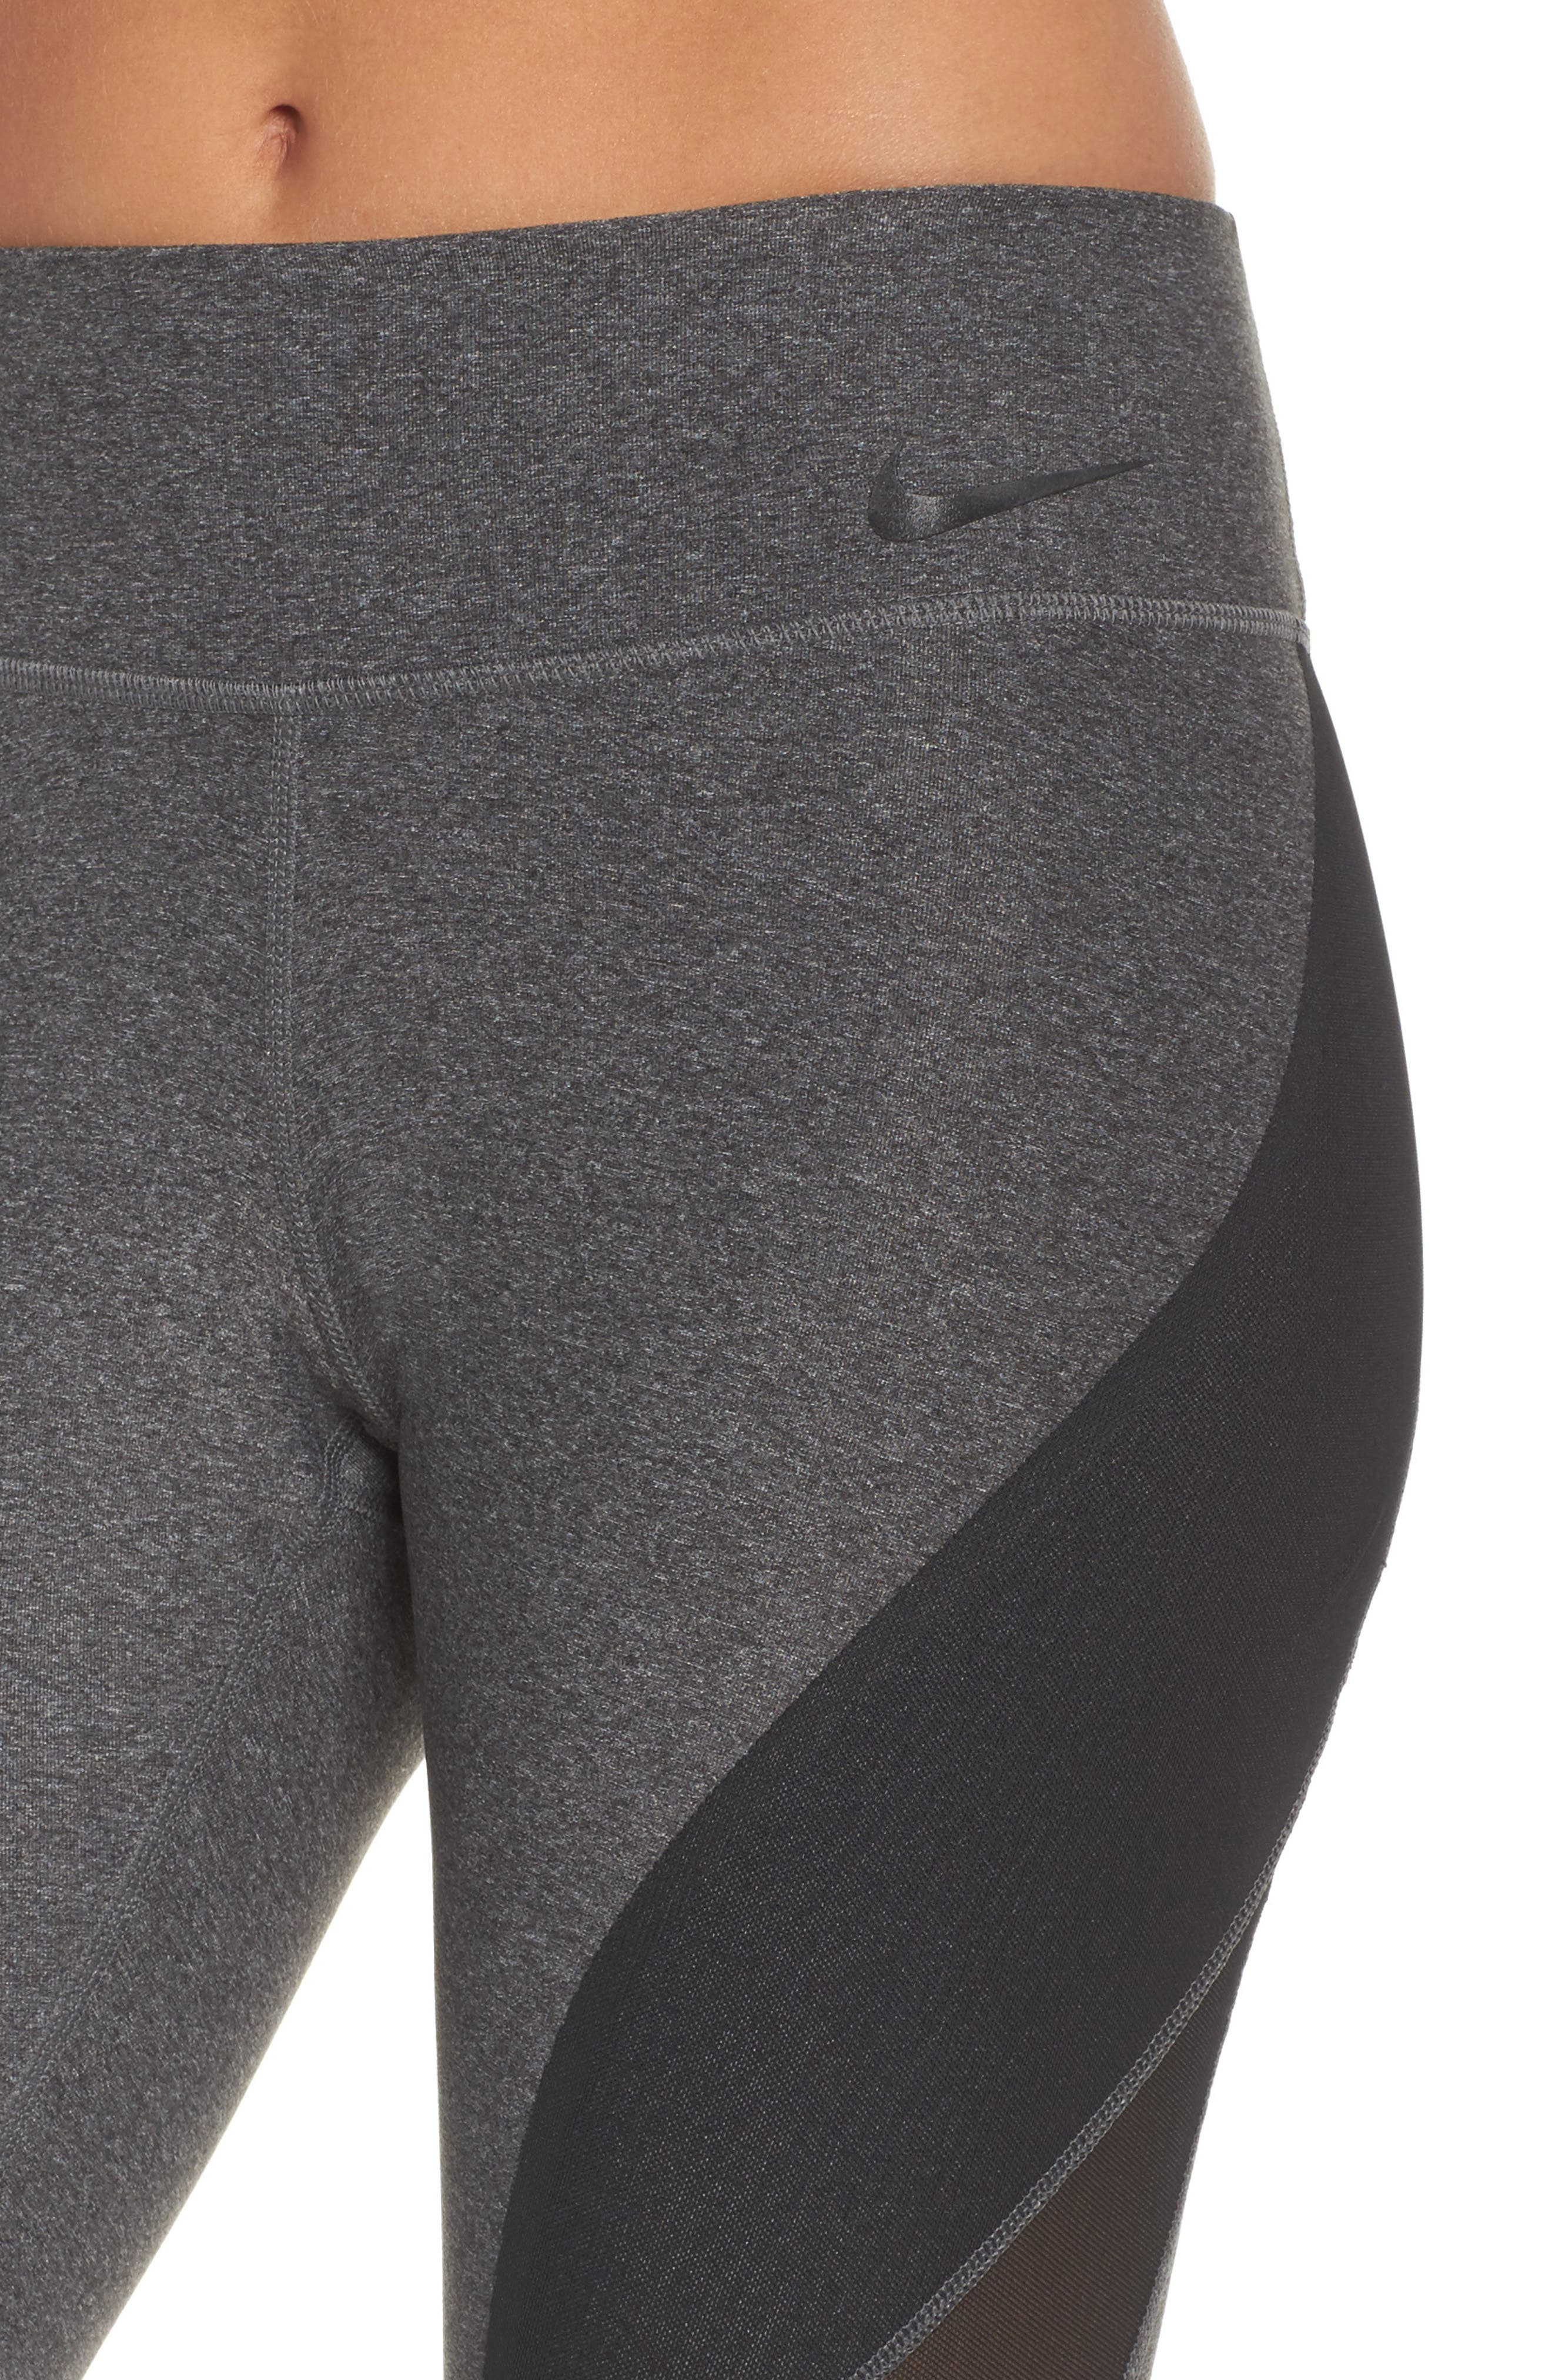 Power Legend Training Tights,                             Alternate thumbnail 4, color,                             071